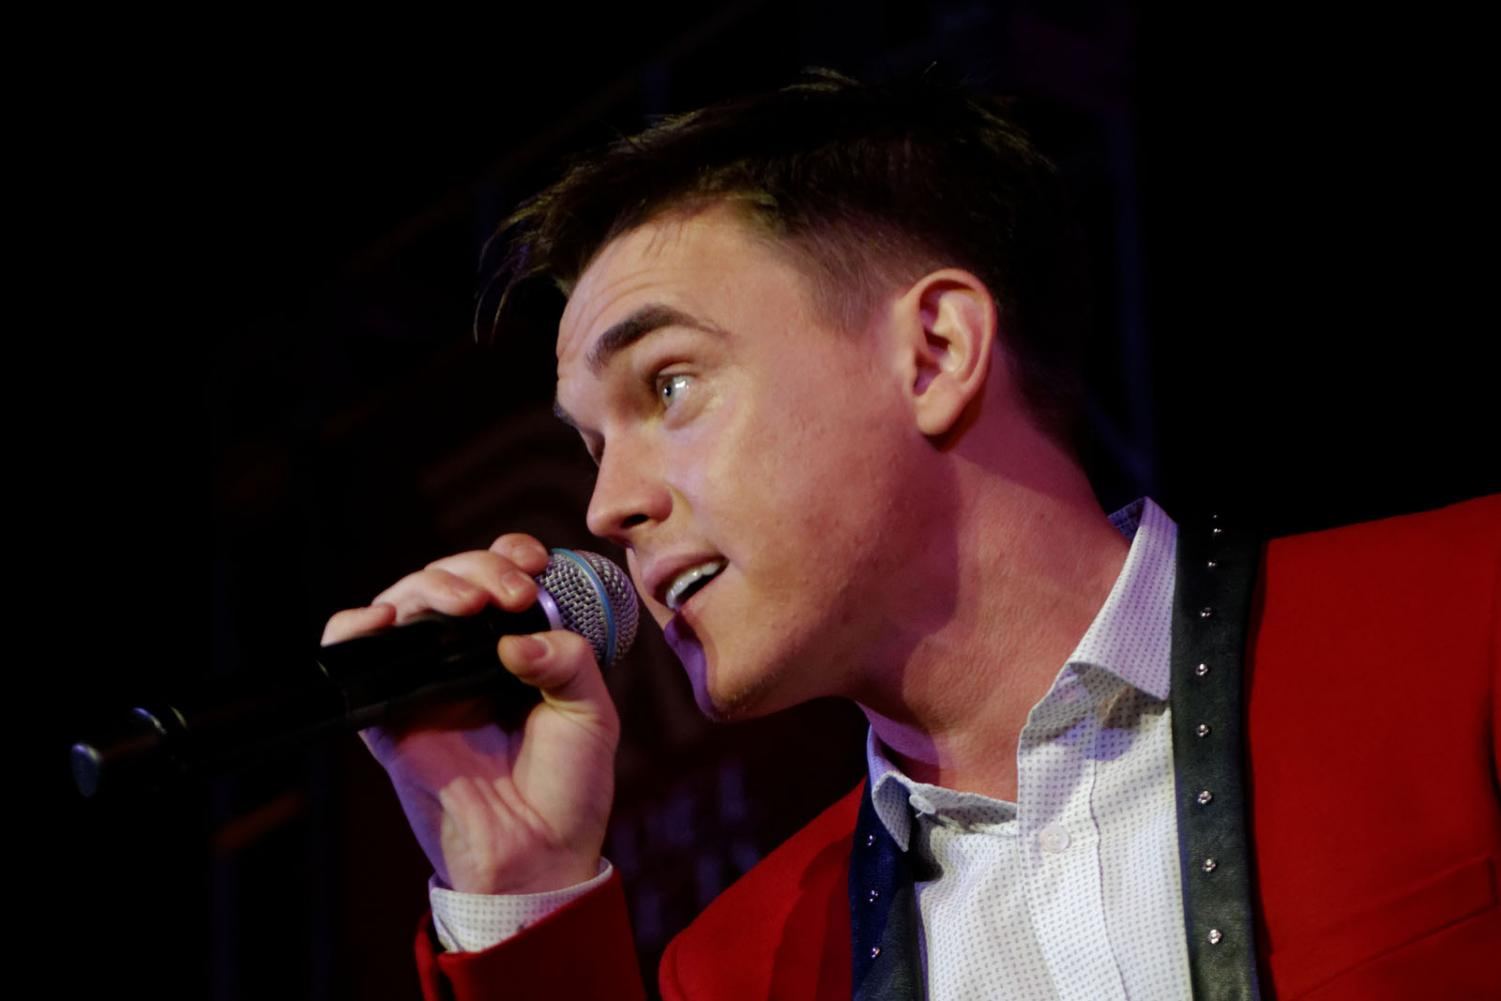 Jesse McCartney performing live at The Citadel Outlets' 12th Annual Tree Lighting Concert in Commerce CA Nov. 9th, 2013.